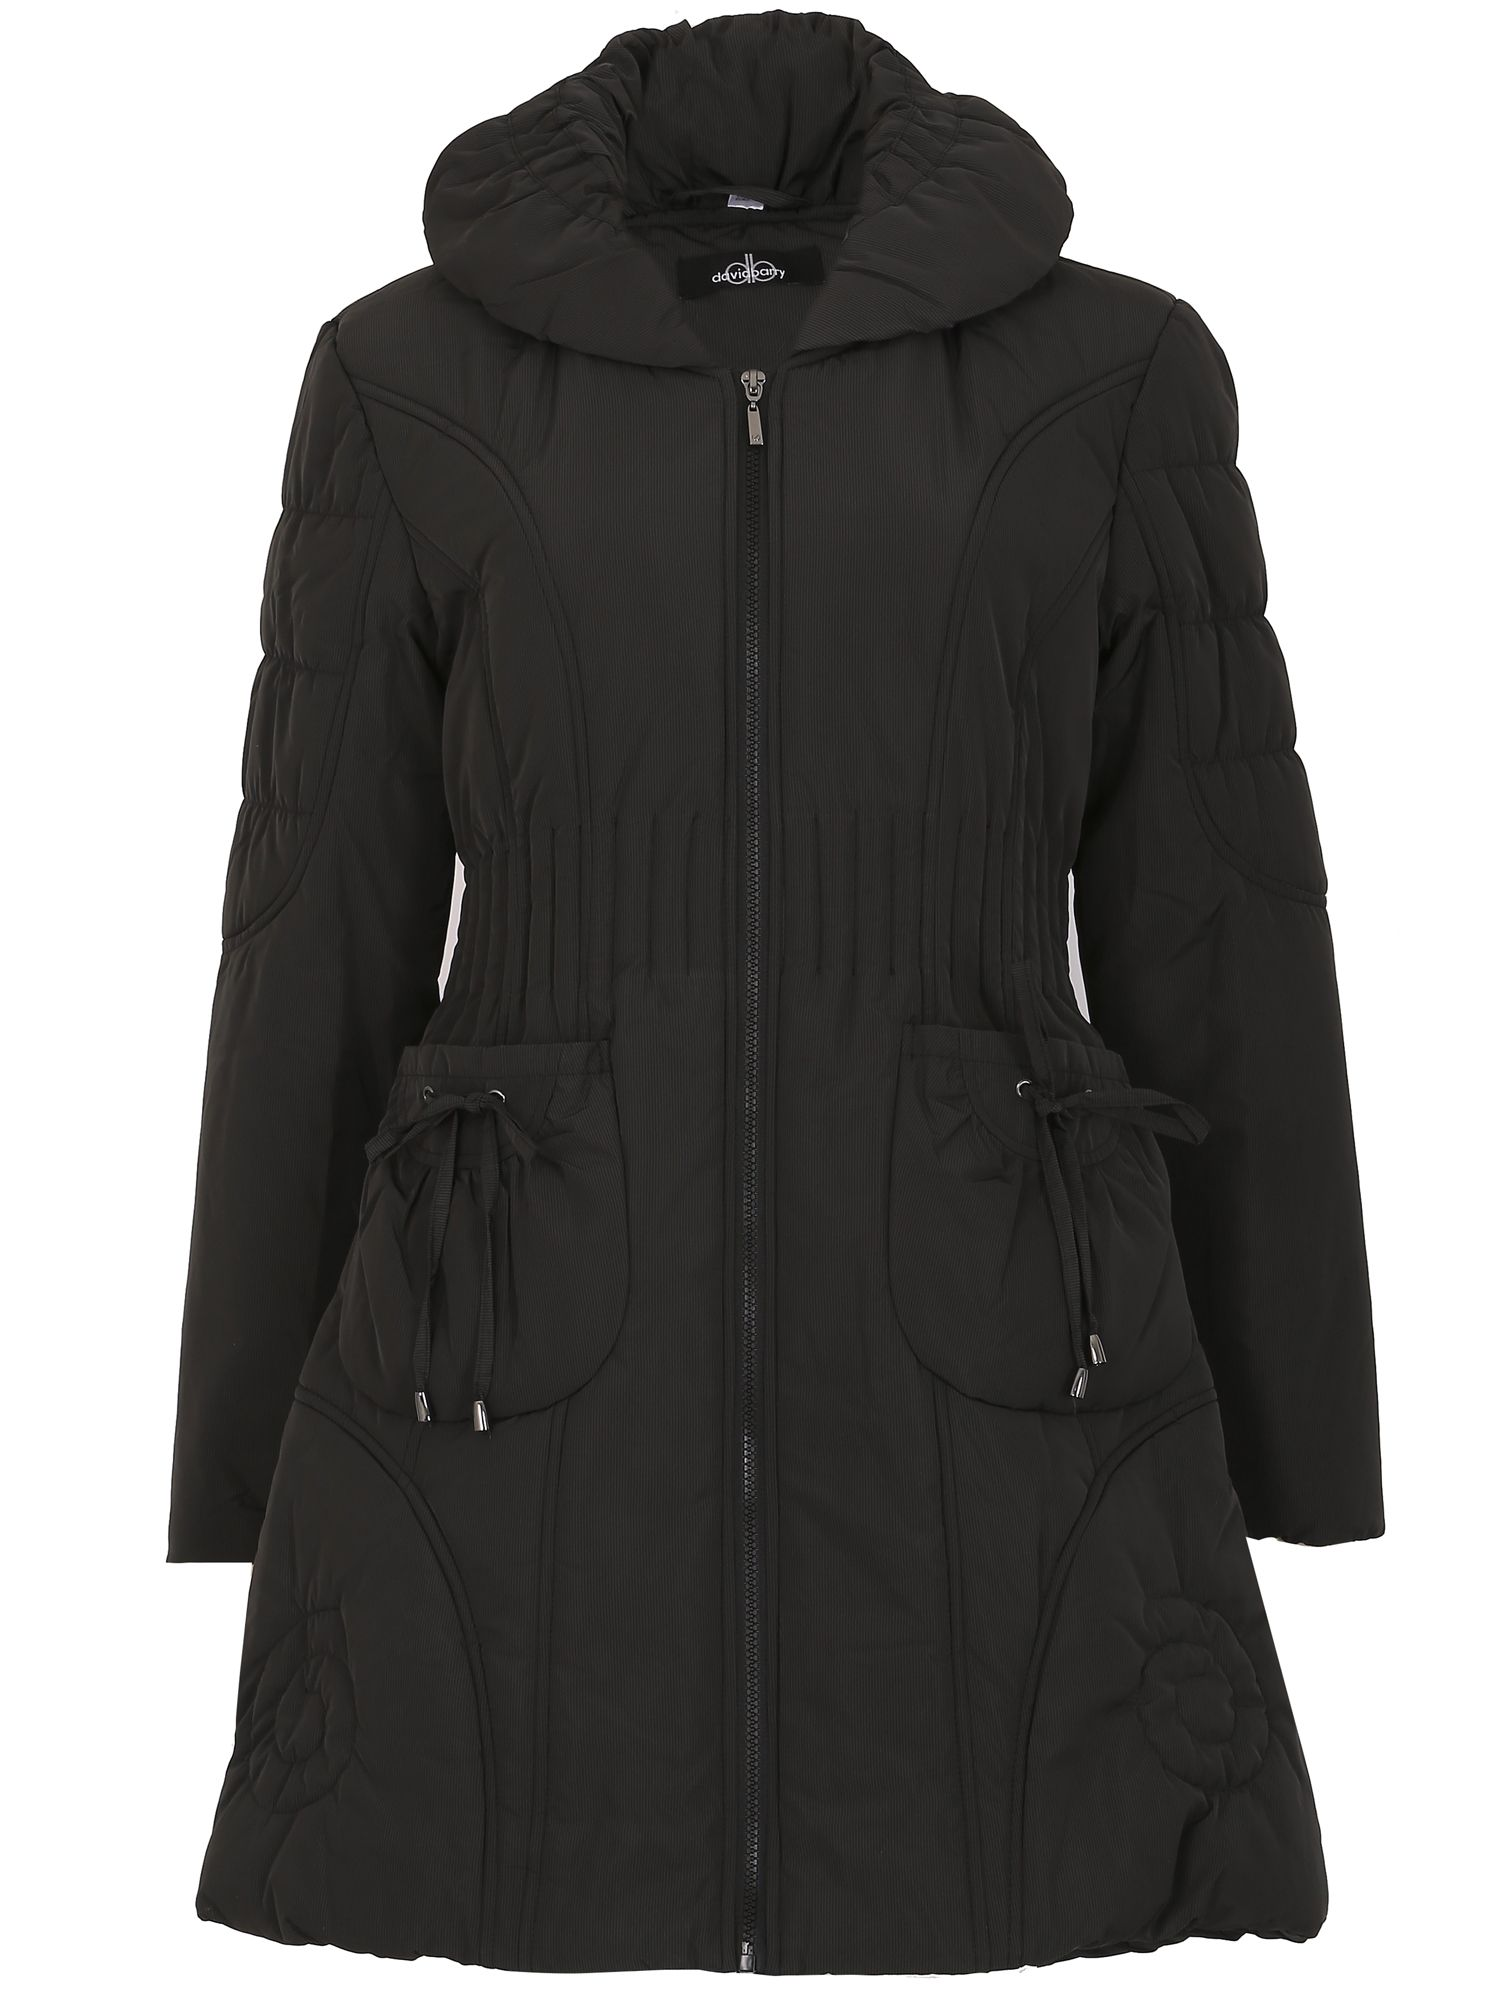 David Barry Ruched Collar 7/8 Quilted Coat, Black